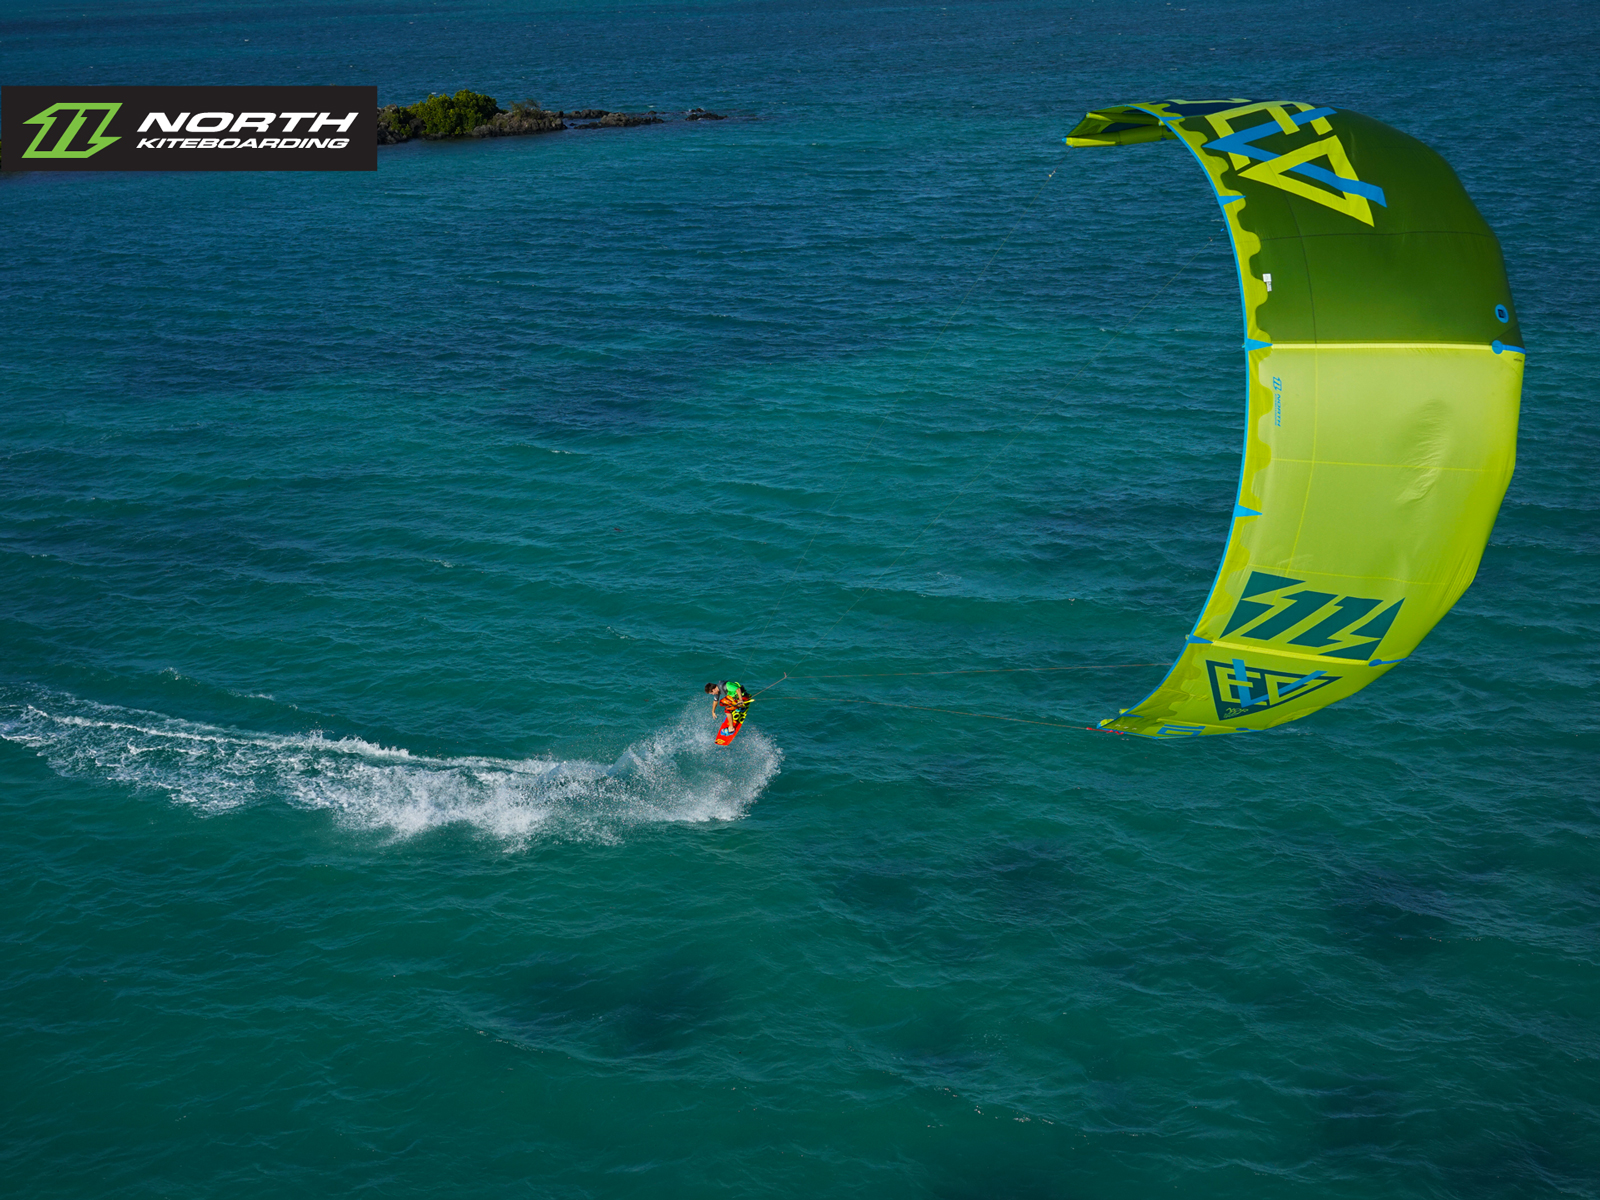 kitesurf wallpaper image - The 2015 North Evo as seen from above - kitesurfing - in resolution: Standard 4:3 1600 X 1200